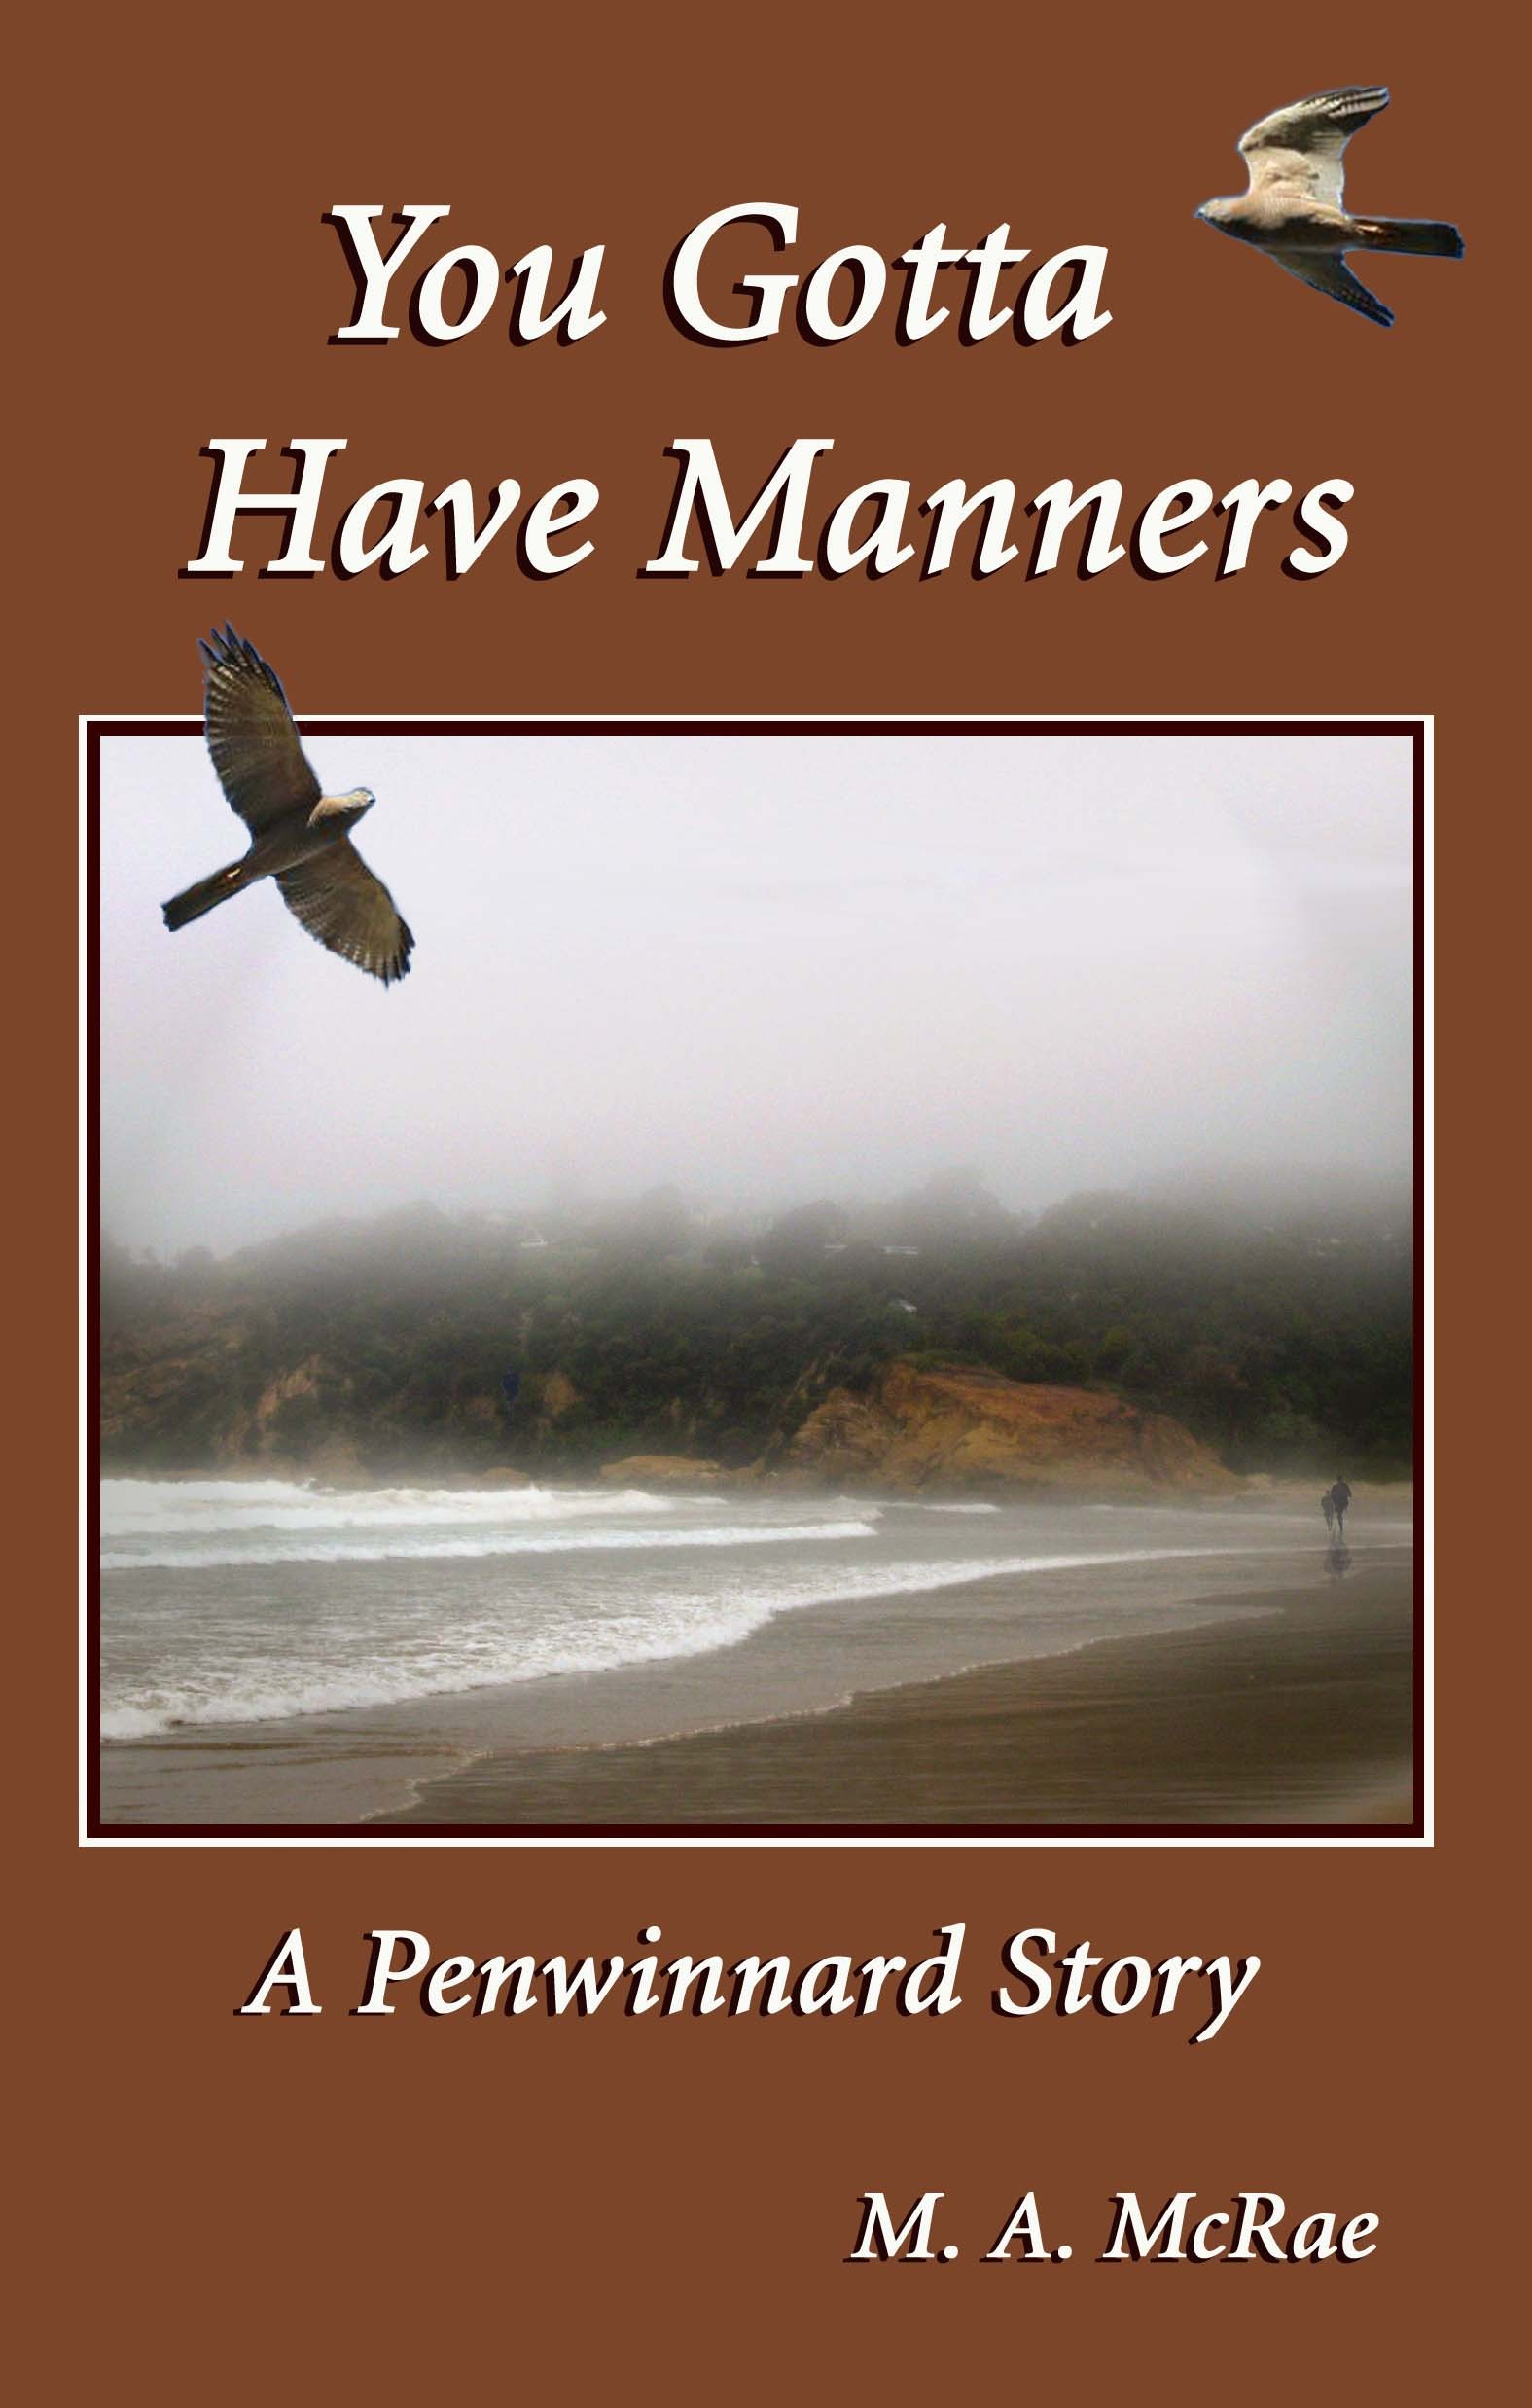 You Gotta Have Manners By: M. A. McRae